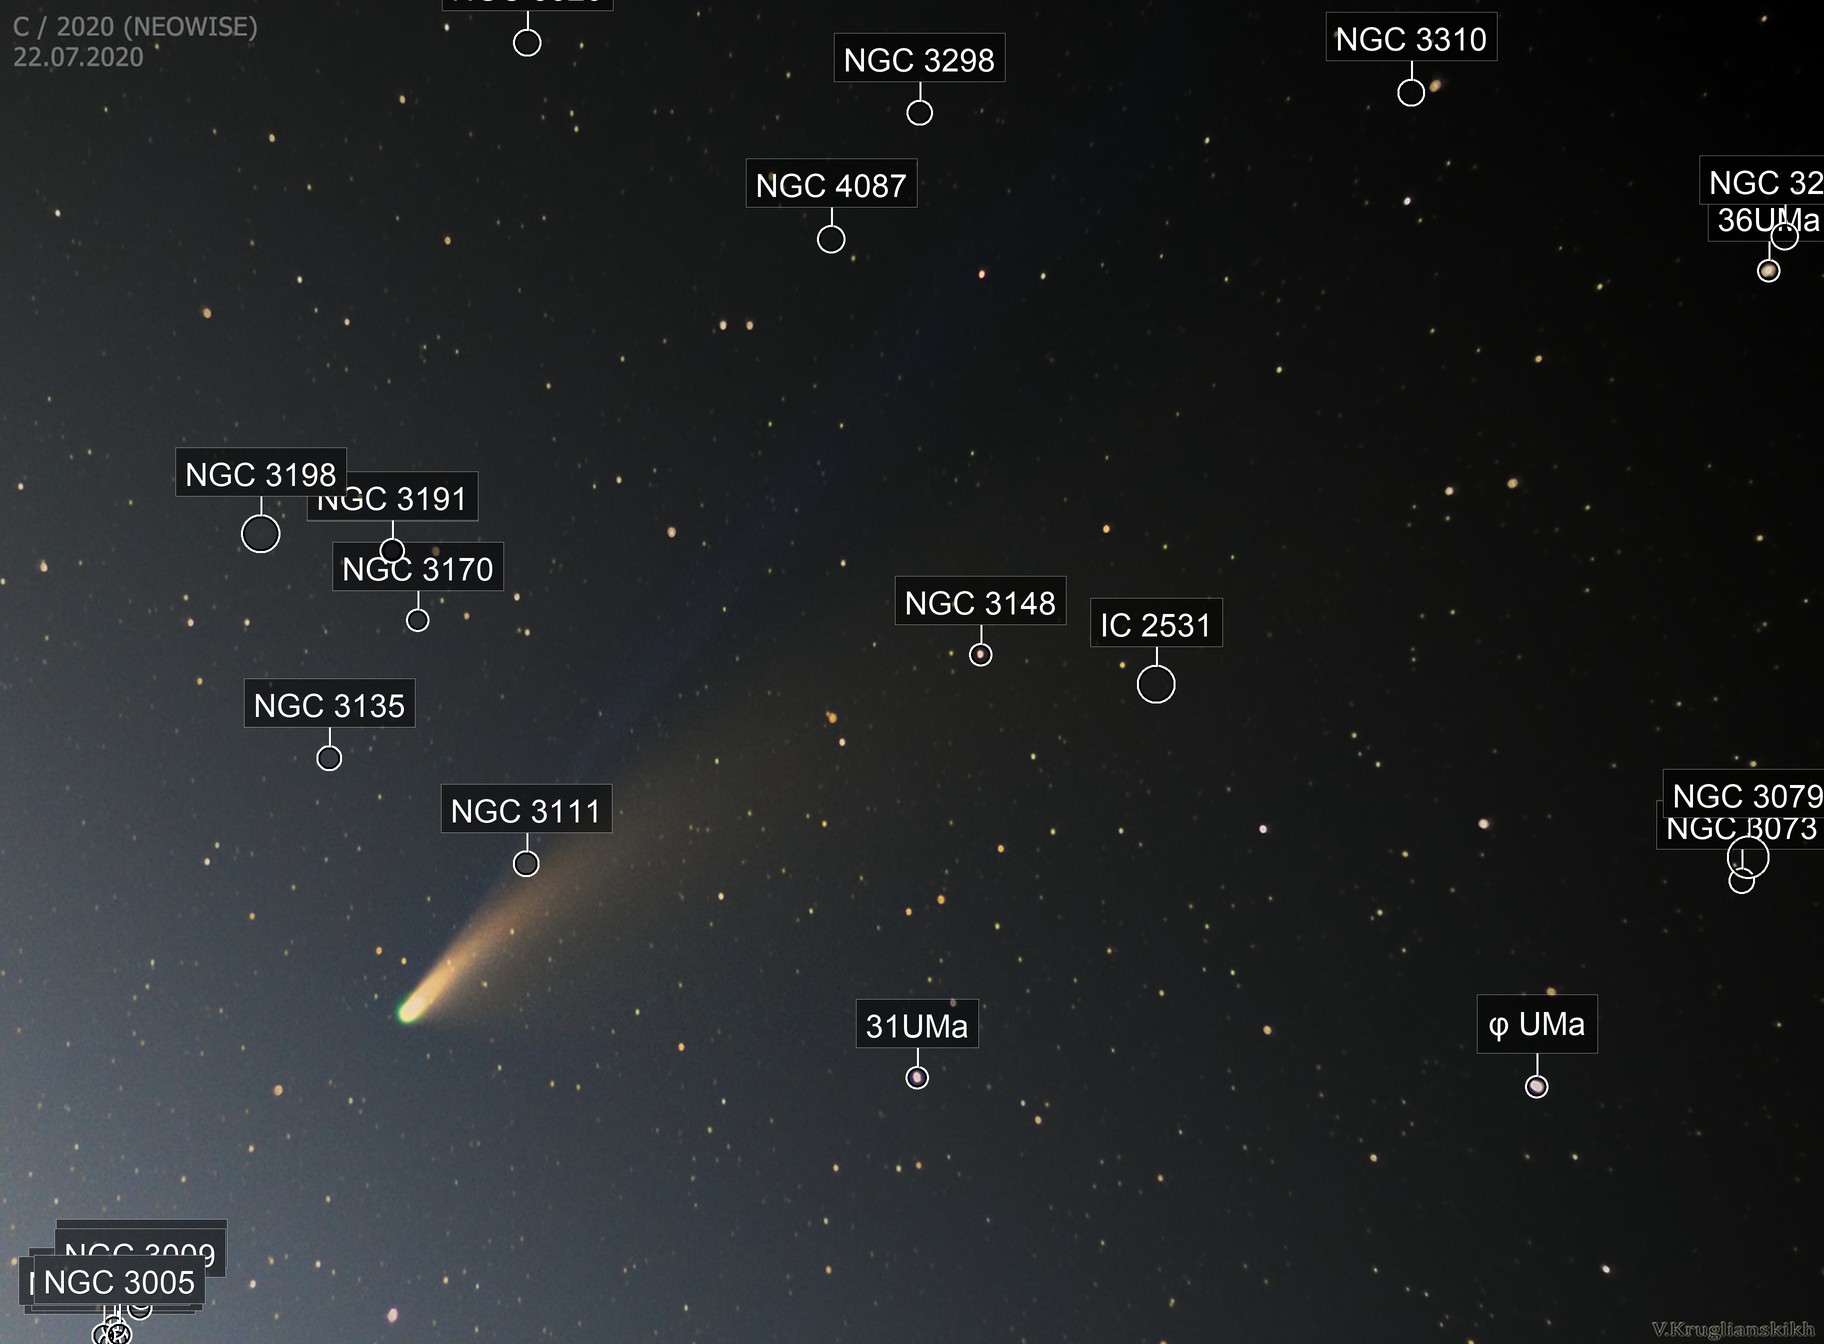 C/2020 (NEOWISE)